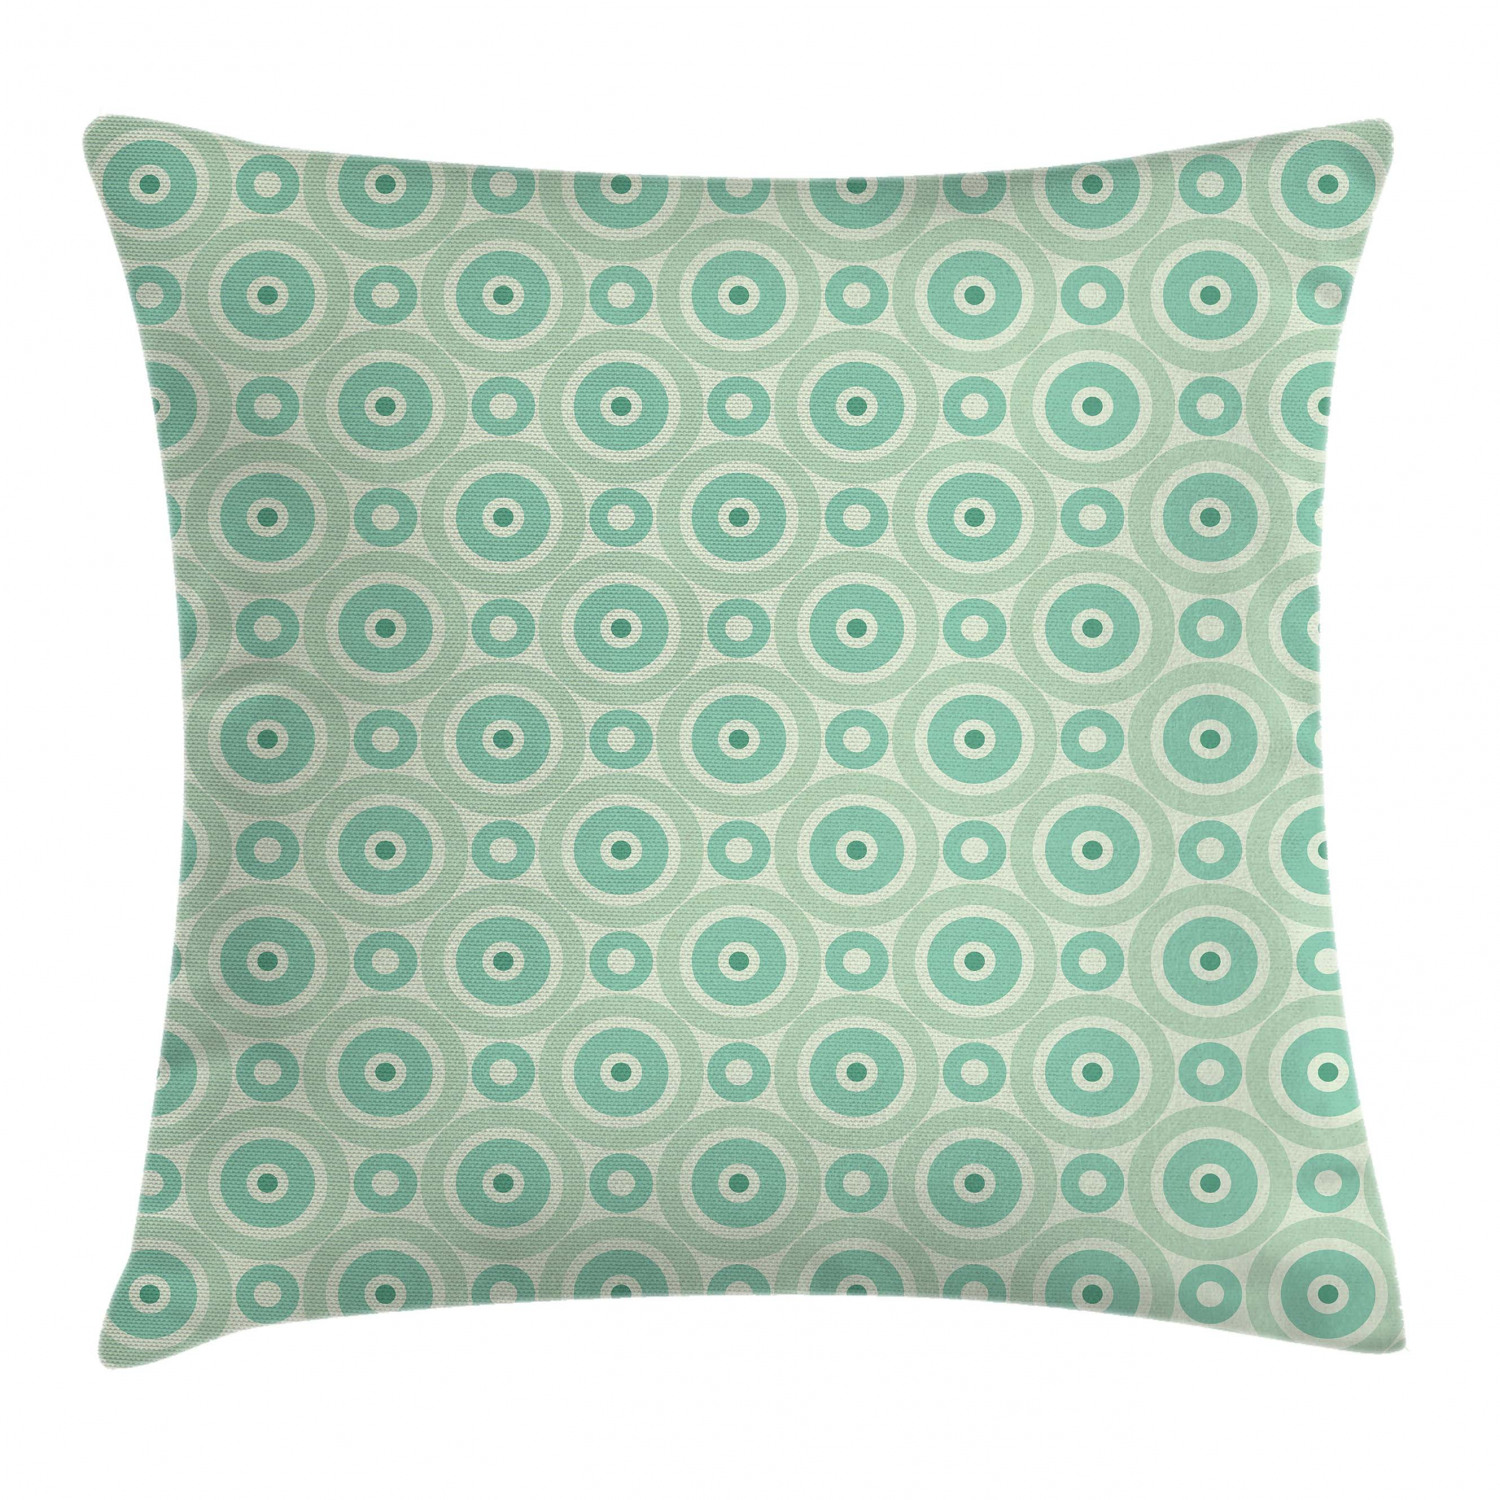 Mint Throw Pillow Cushion Cover Big And Little Circles In Symmetrical Composition With Vintage Pastel Colors Decorative Square Accent Pillow Case 18 X 18 Inches Mint And Pale Green By Ambesonne